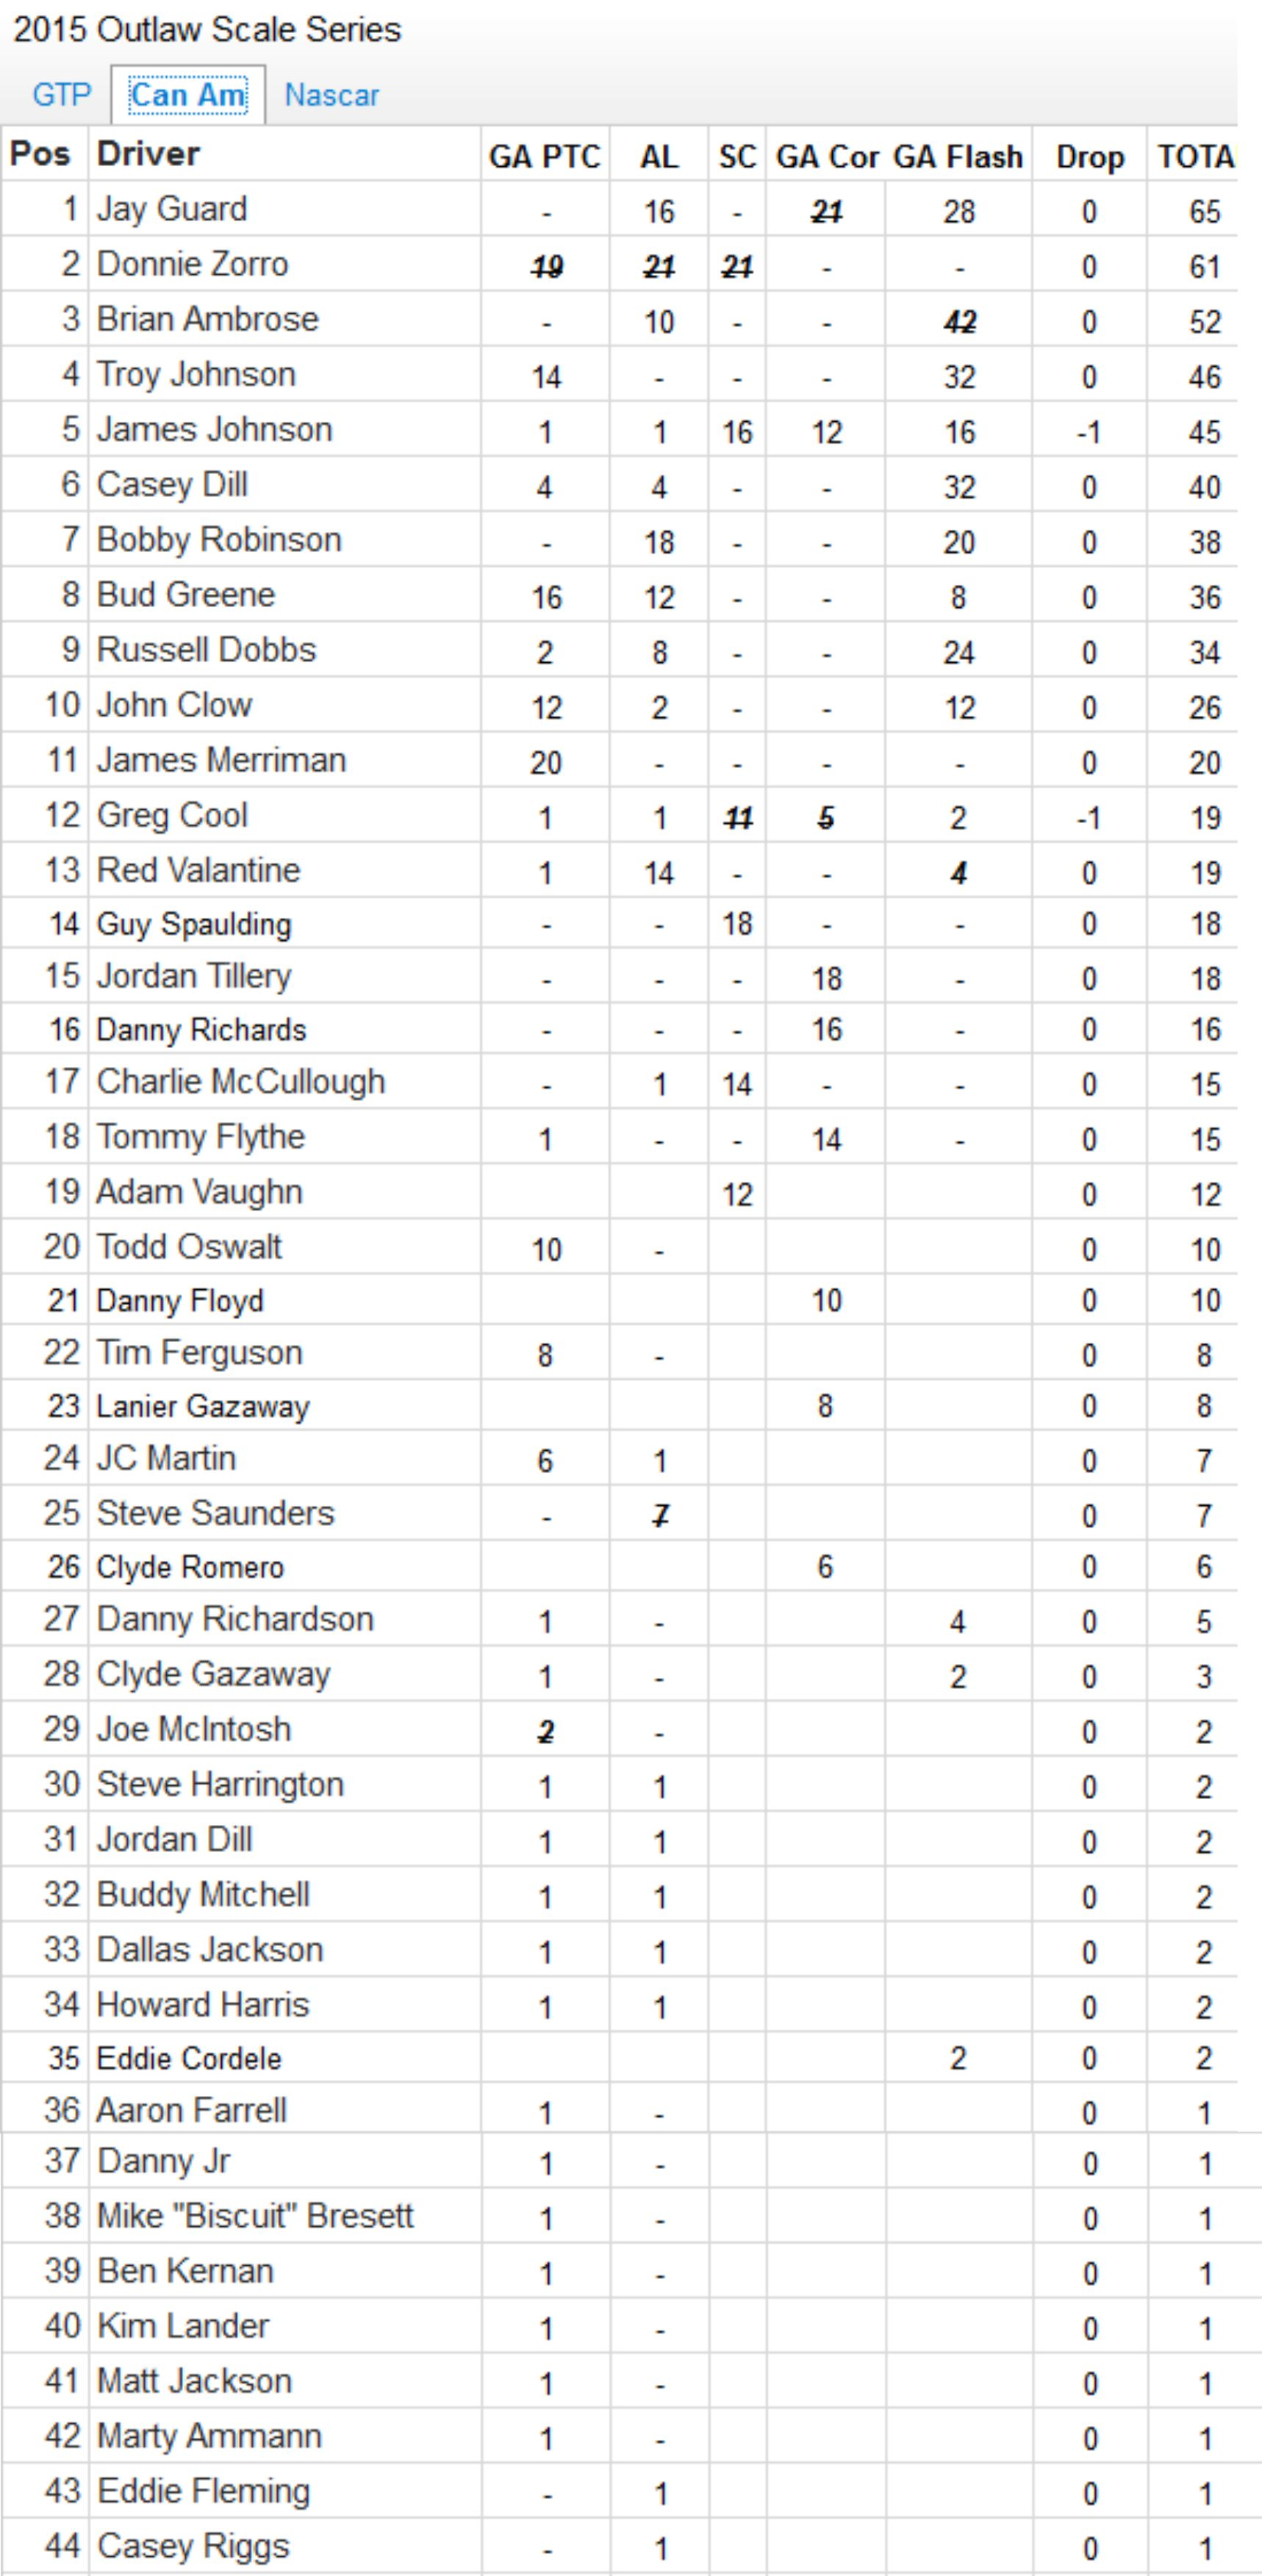 2015 Final Can Am points.jpg